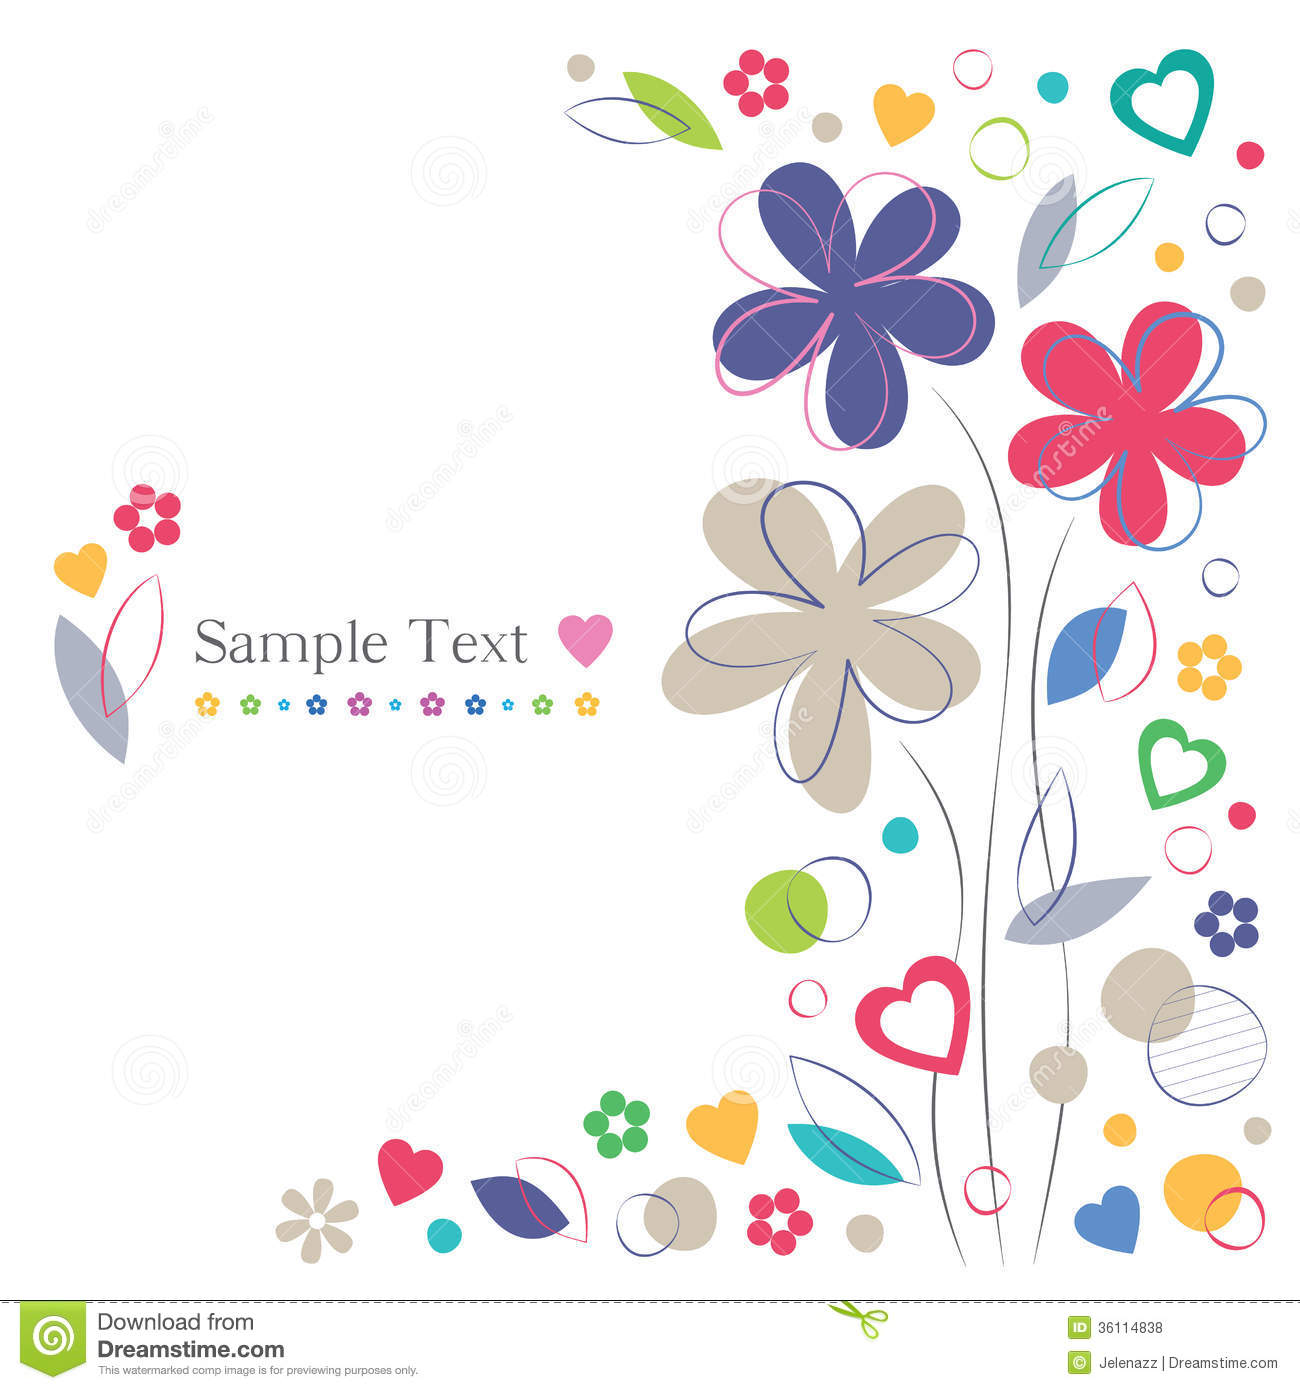 border birthday card ; flowers-hearts-greeting-card-border-colorful-frame-white-background-36114838